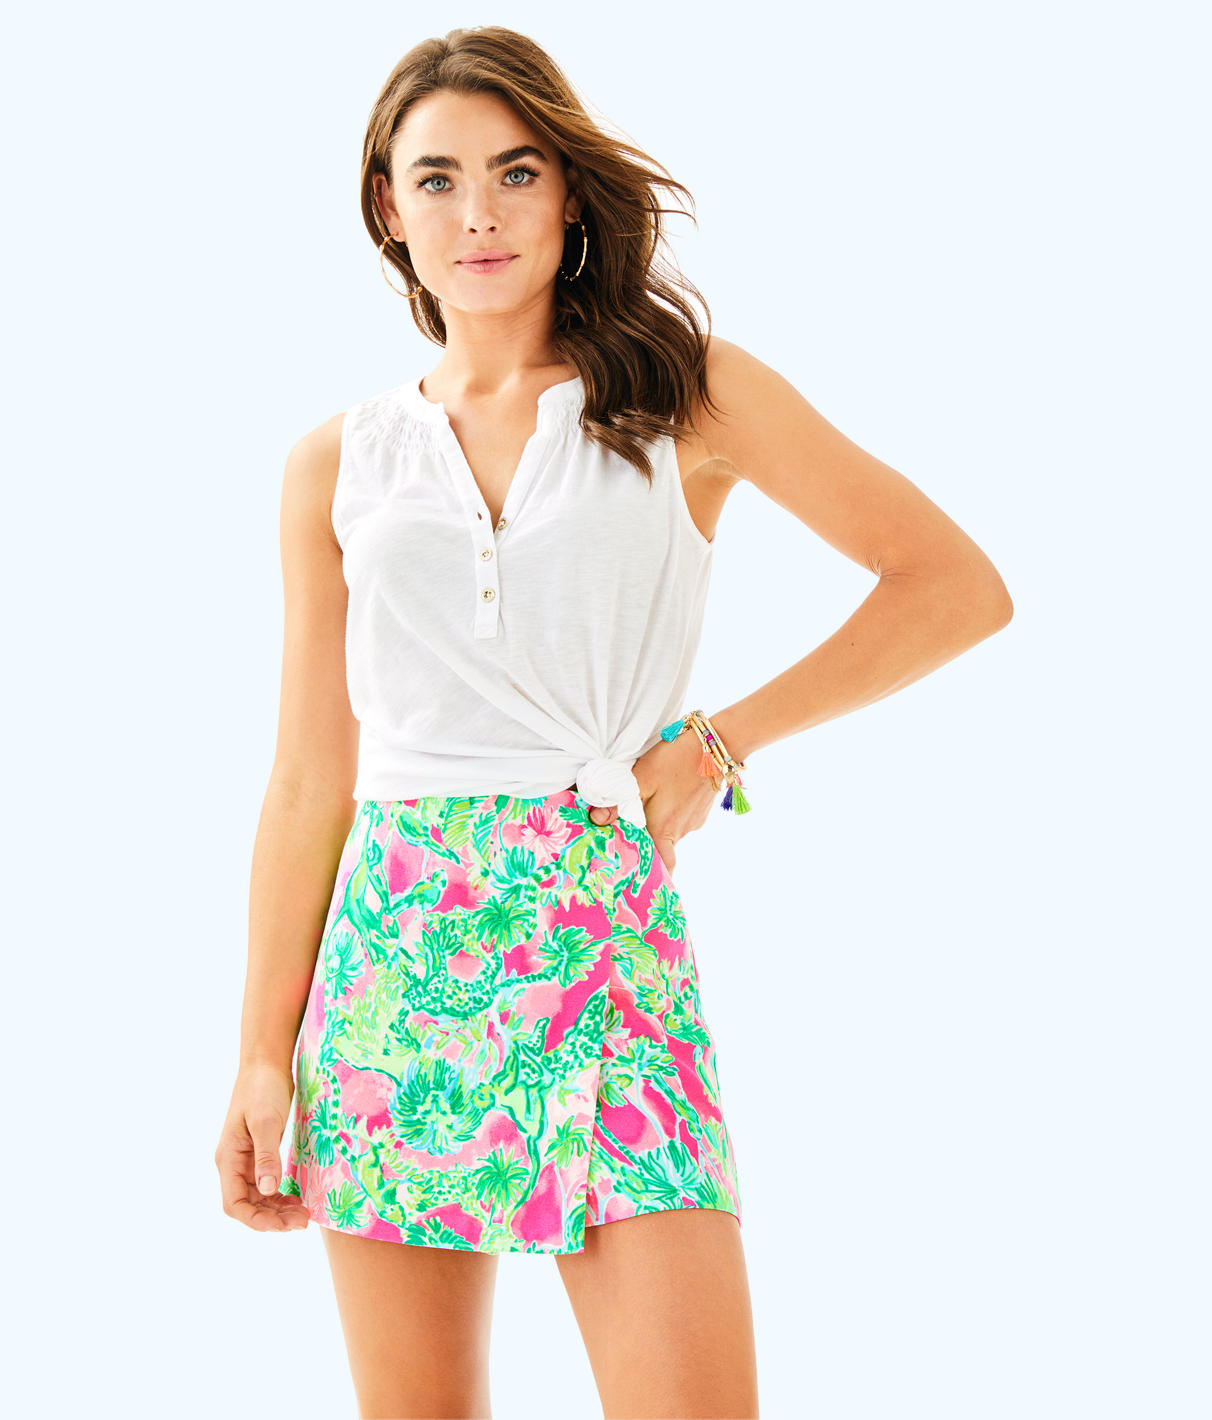 Lilly Pulitzer Lilly Pulitzer Womens Cassia Skort